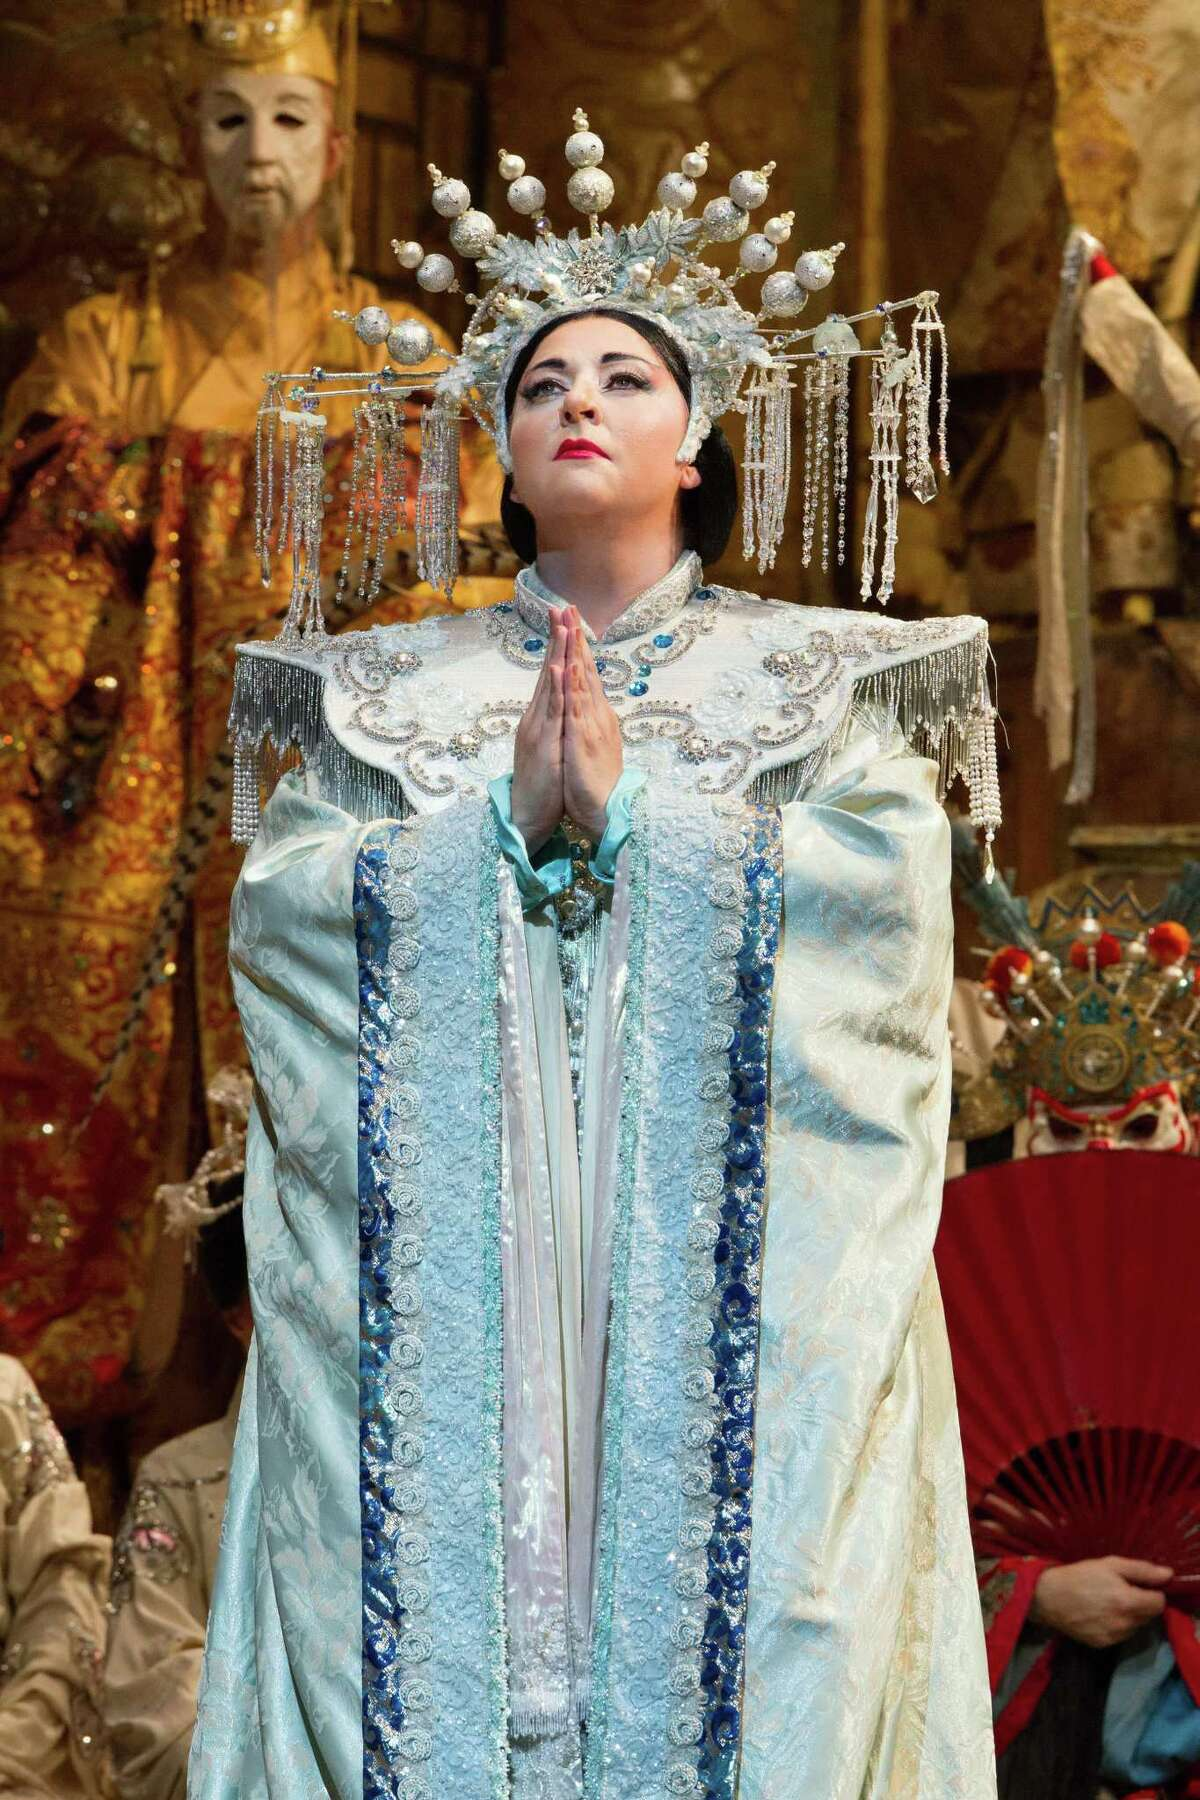 """The 2021-22 season of The Met: Live in HD will include a performance of Puccini's """"Turandot"""" in May 2022. Pictured is a scene from the Met's 2019 performance of the opera."""